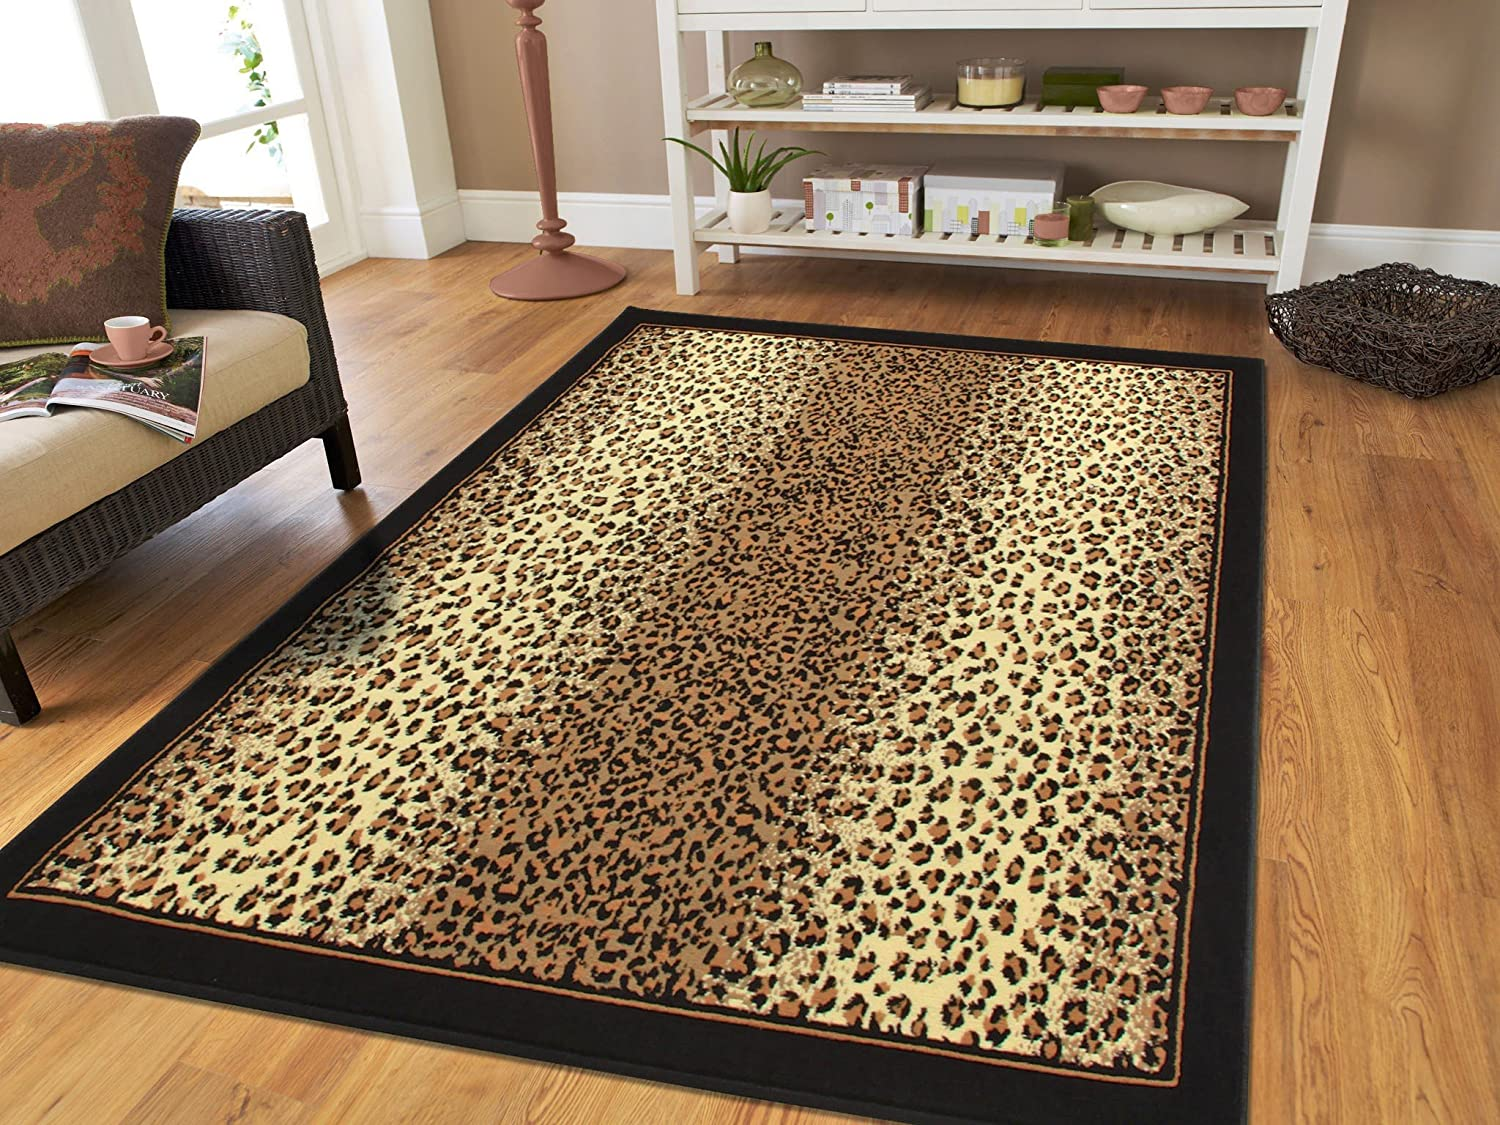 Amazon Com Cheetah 2x3 Rug Animal Print Leopard Rug 2x4 Small Rugs